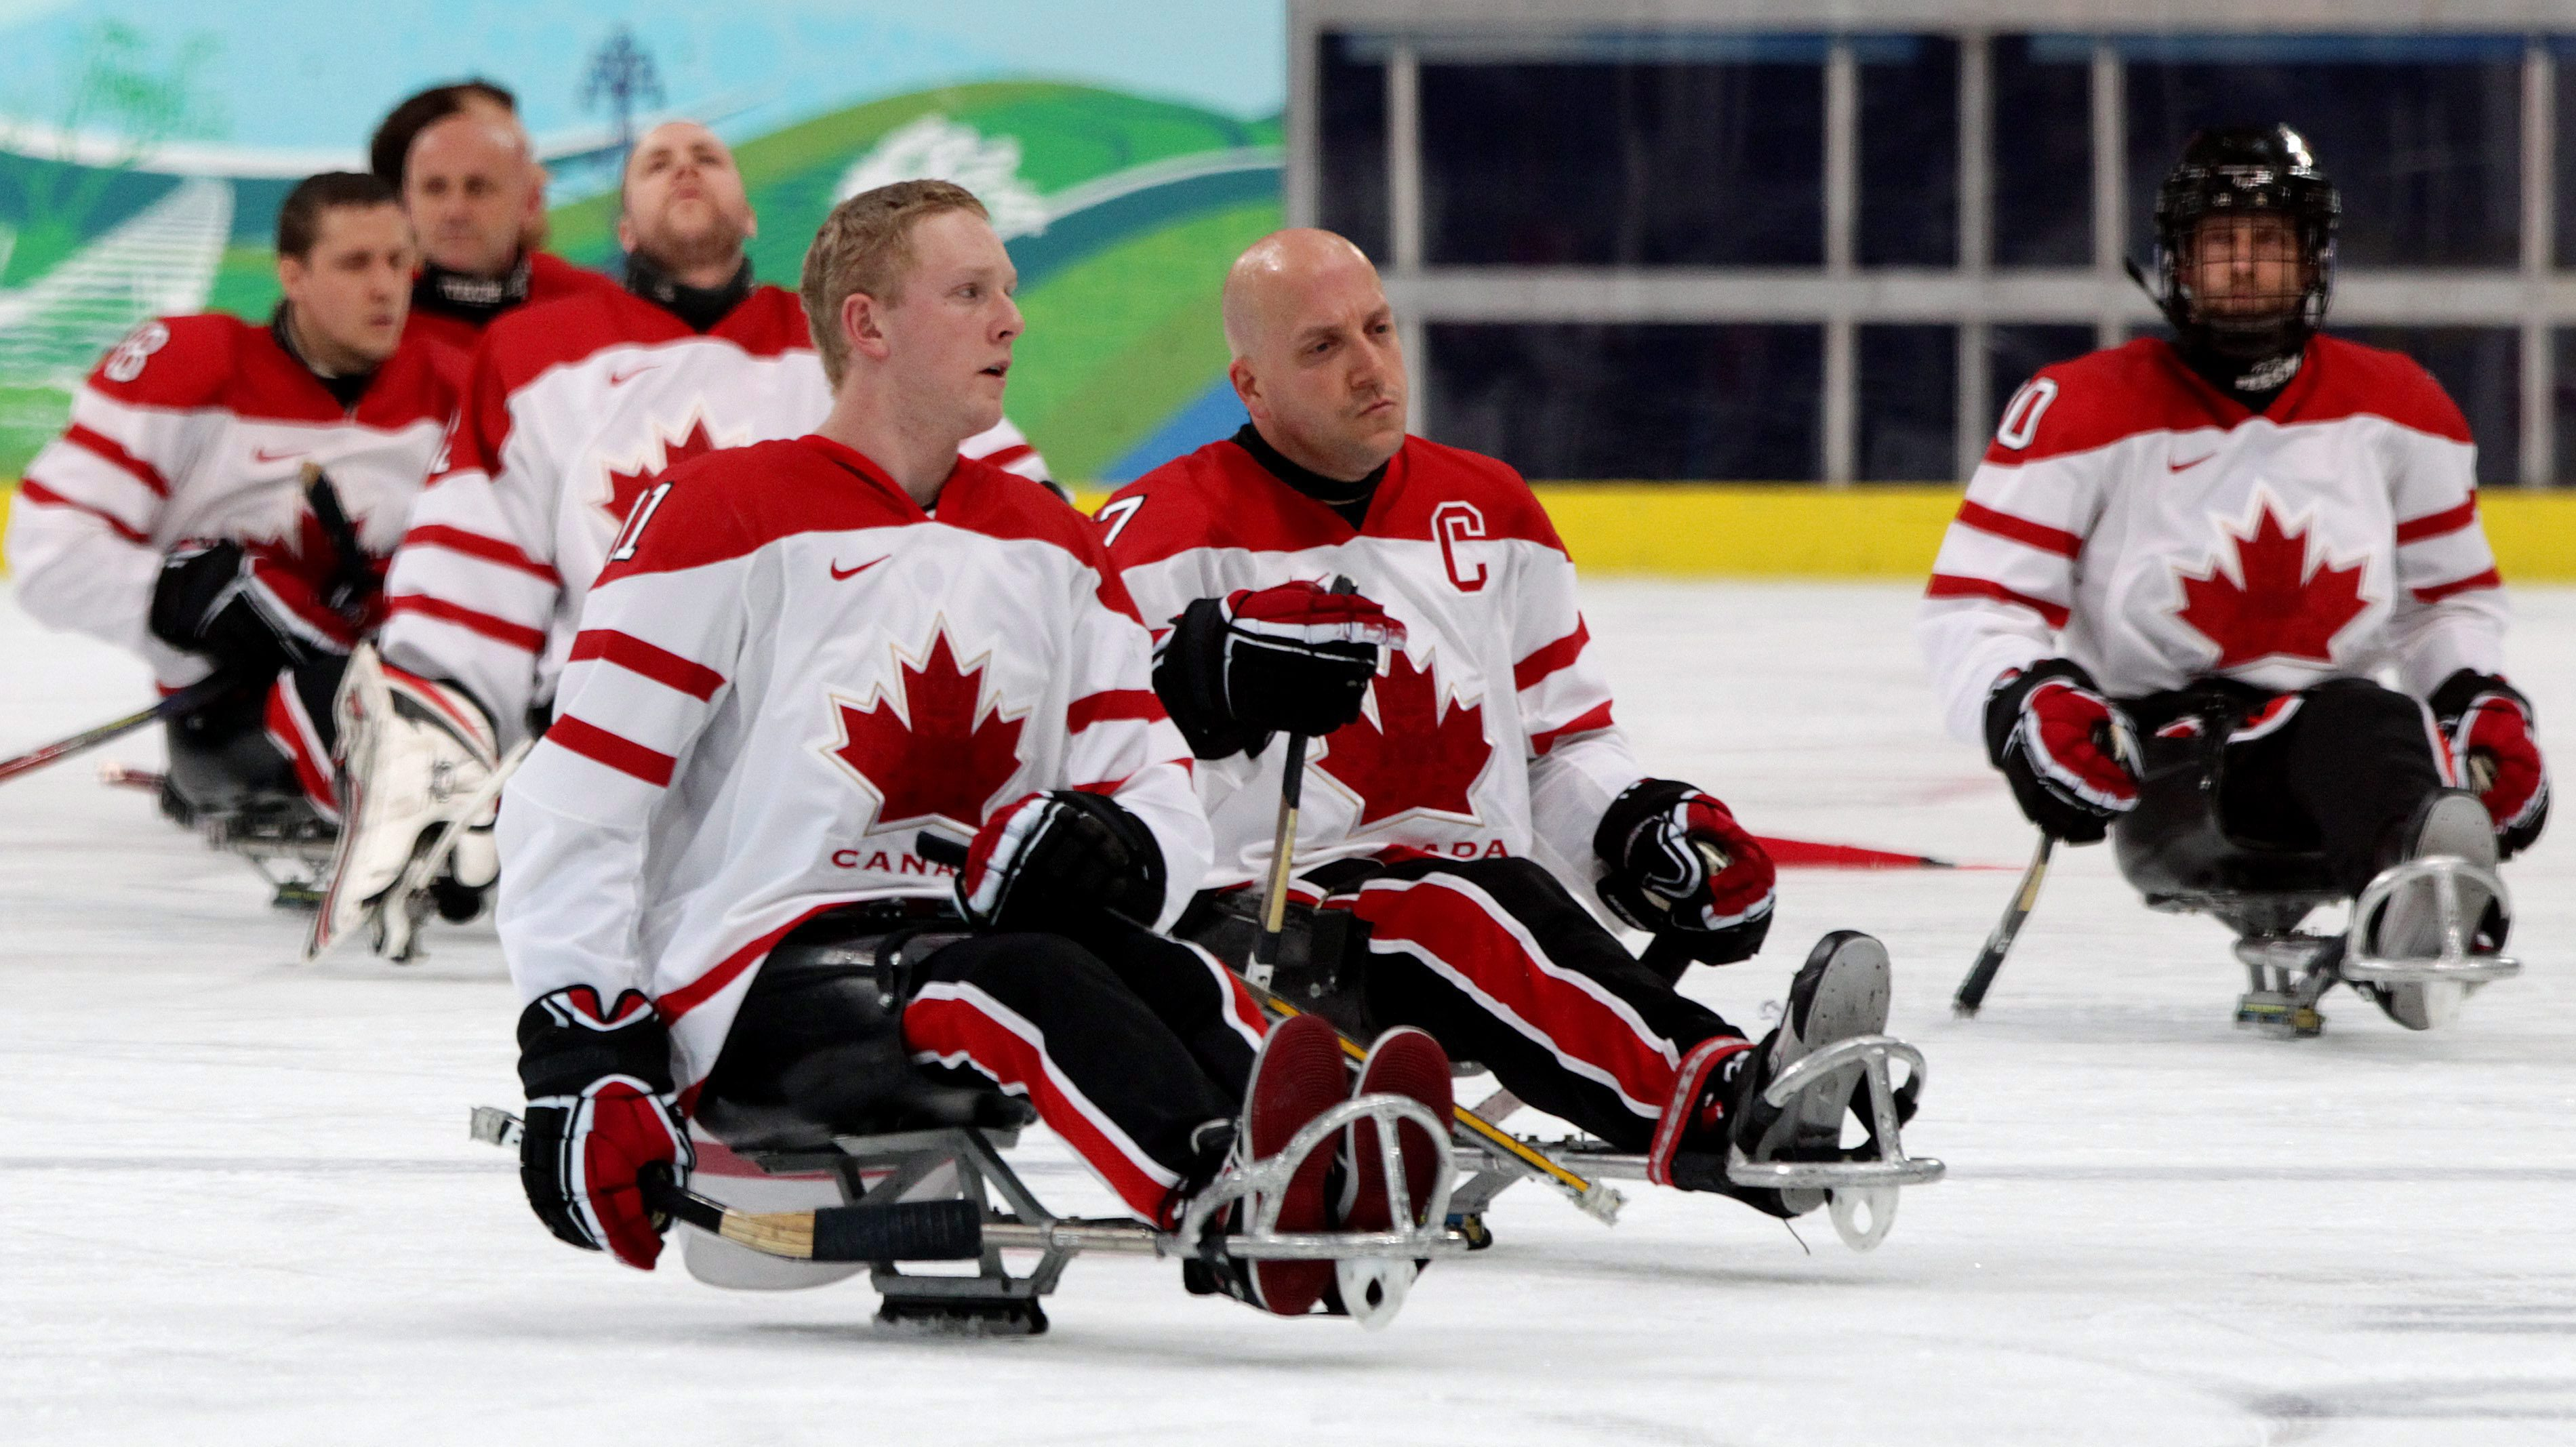 Para Ice Hockey (Sledge Hockey)